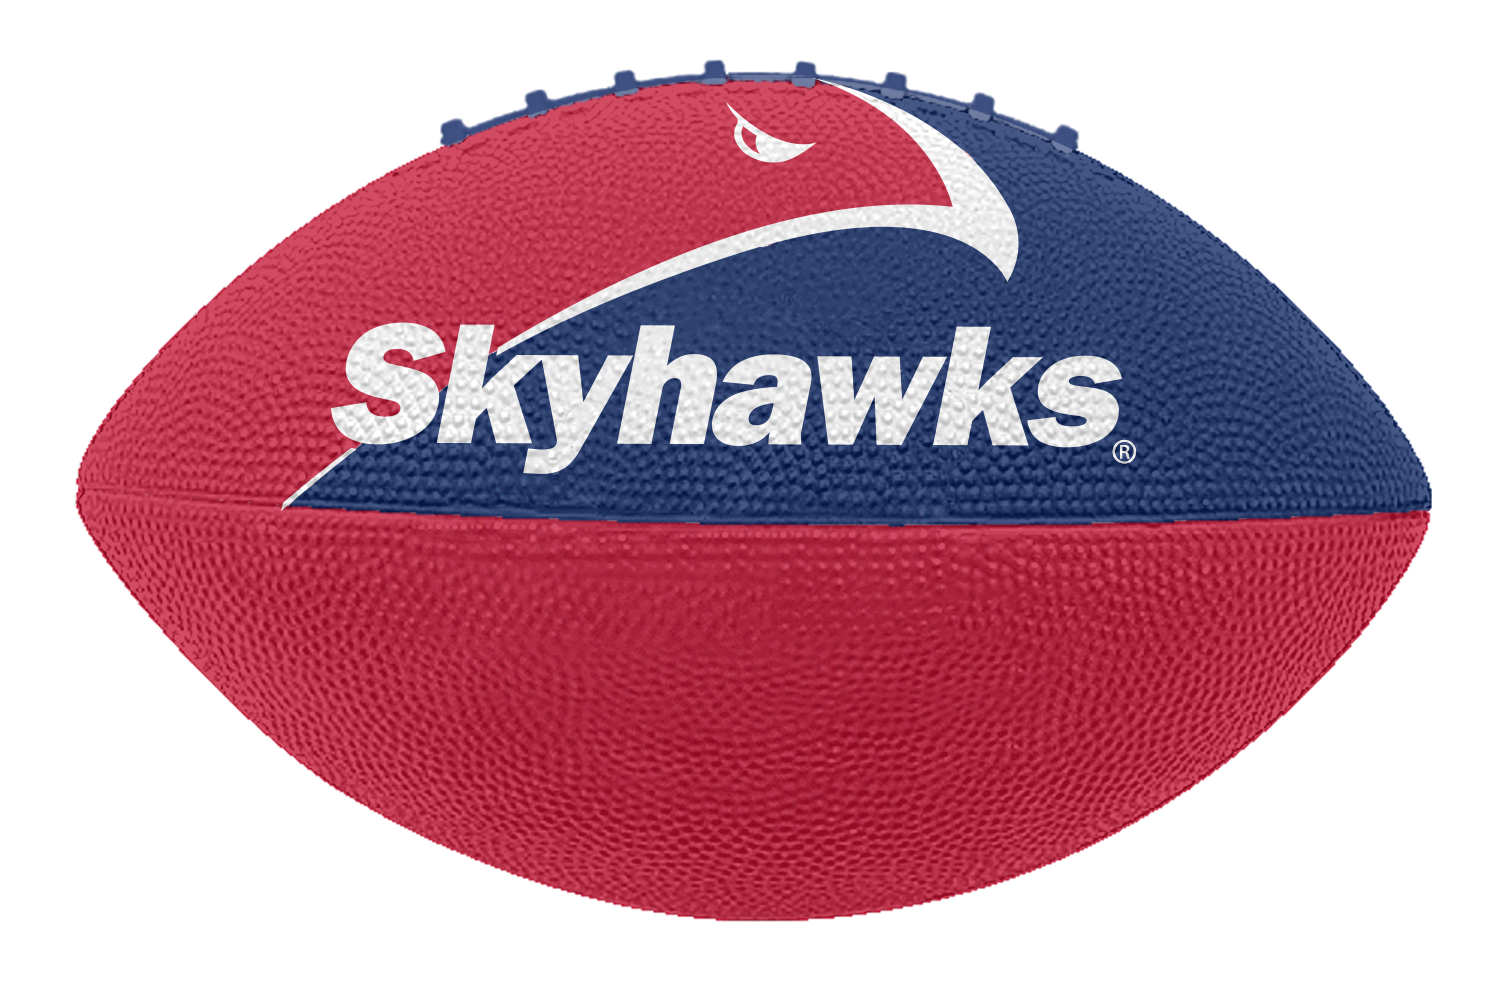 2019 Skyhawks Football size 3